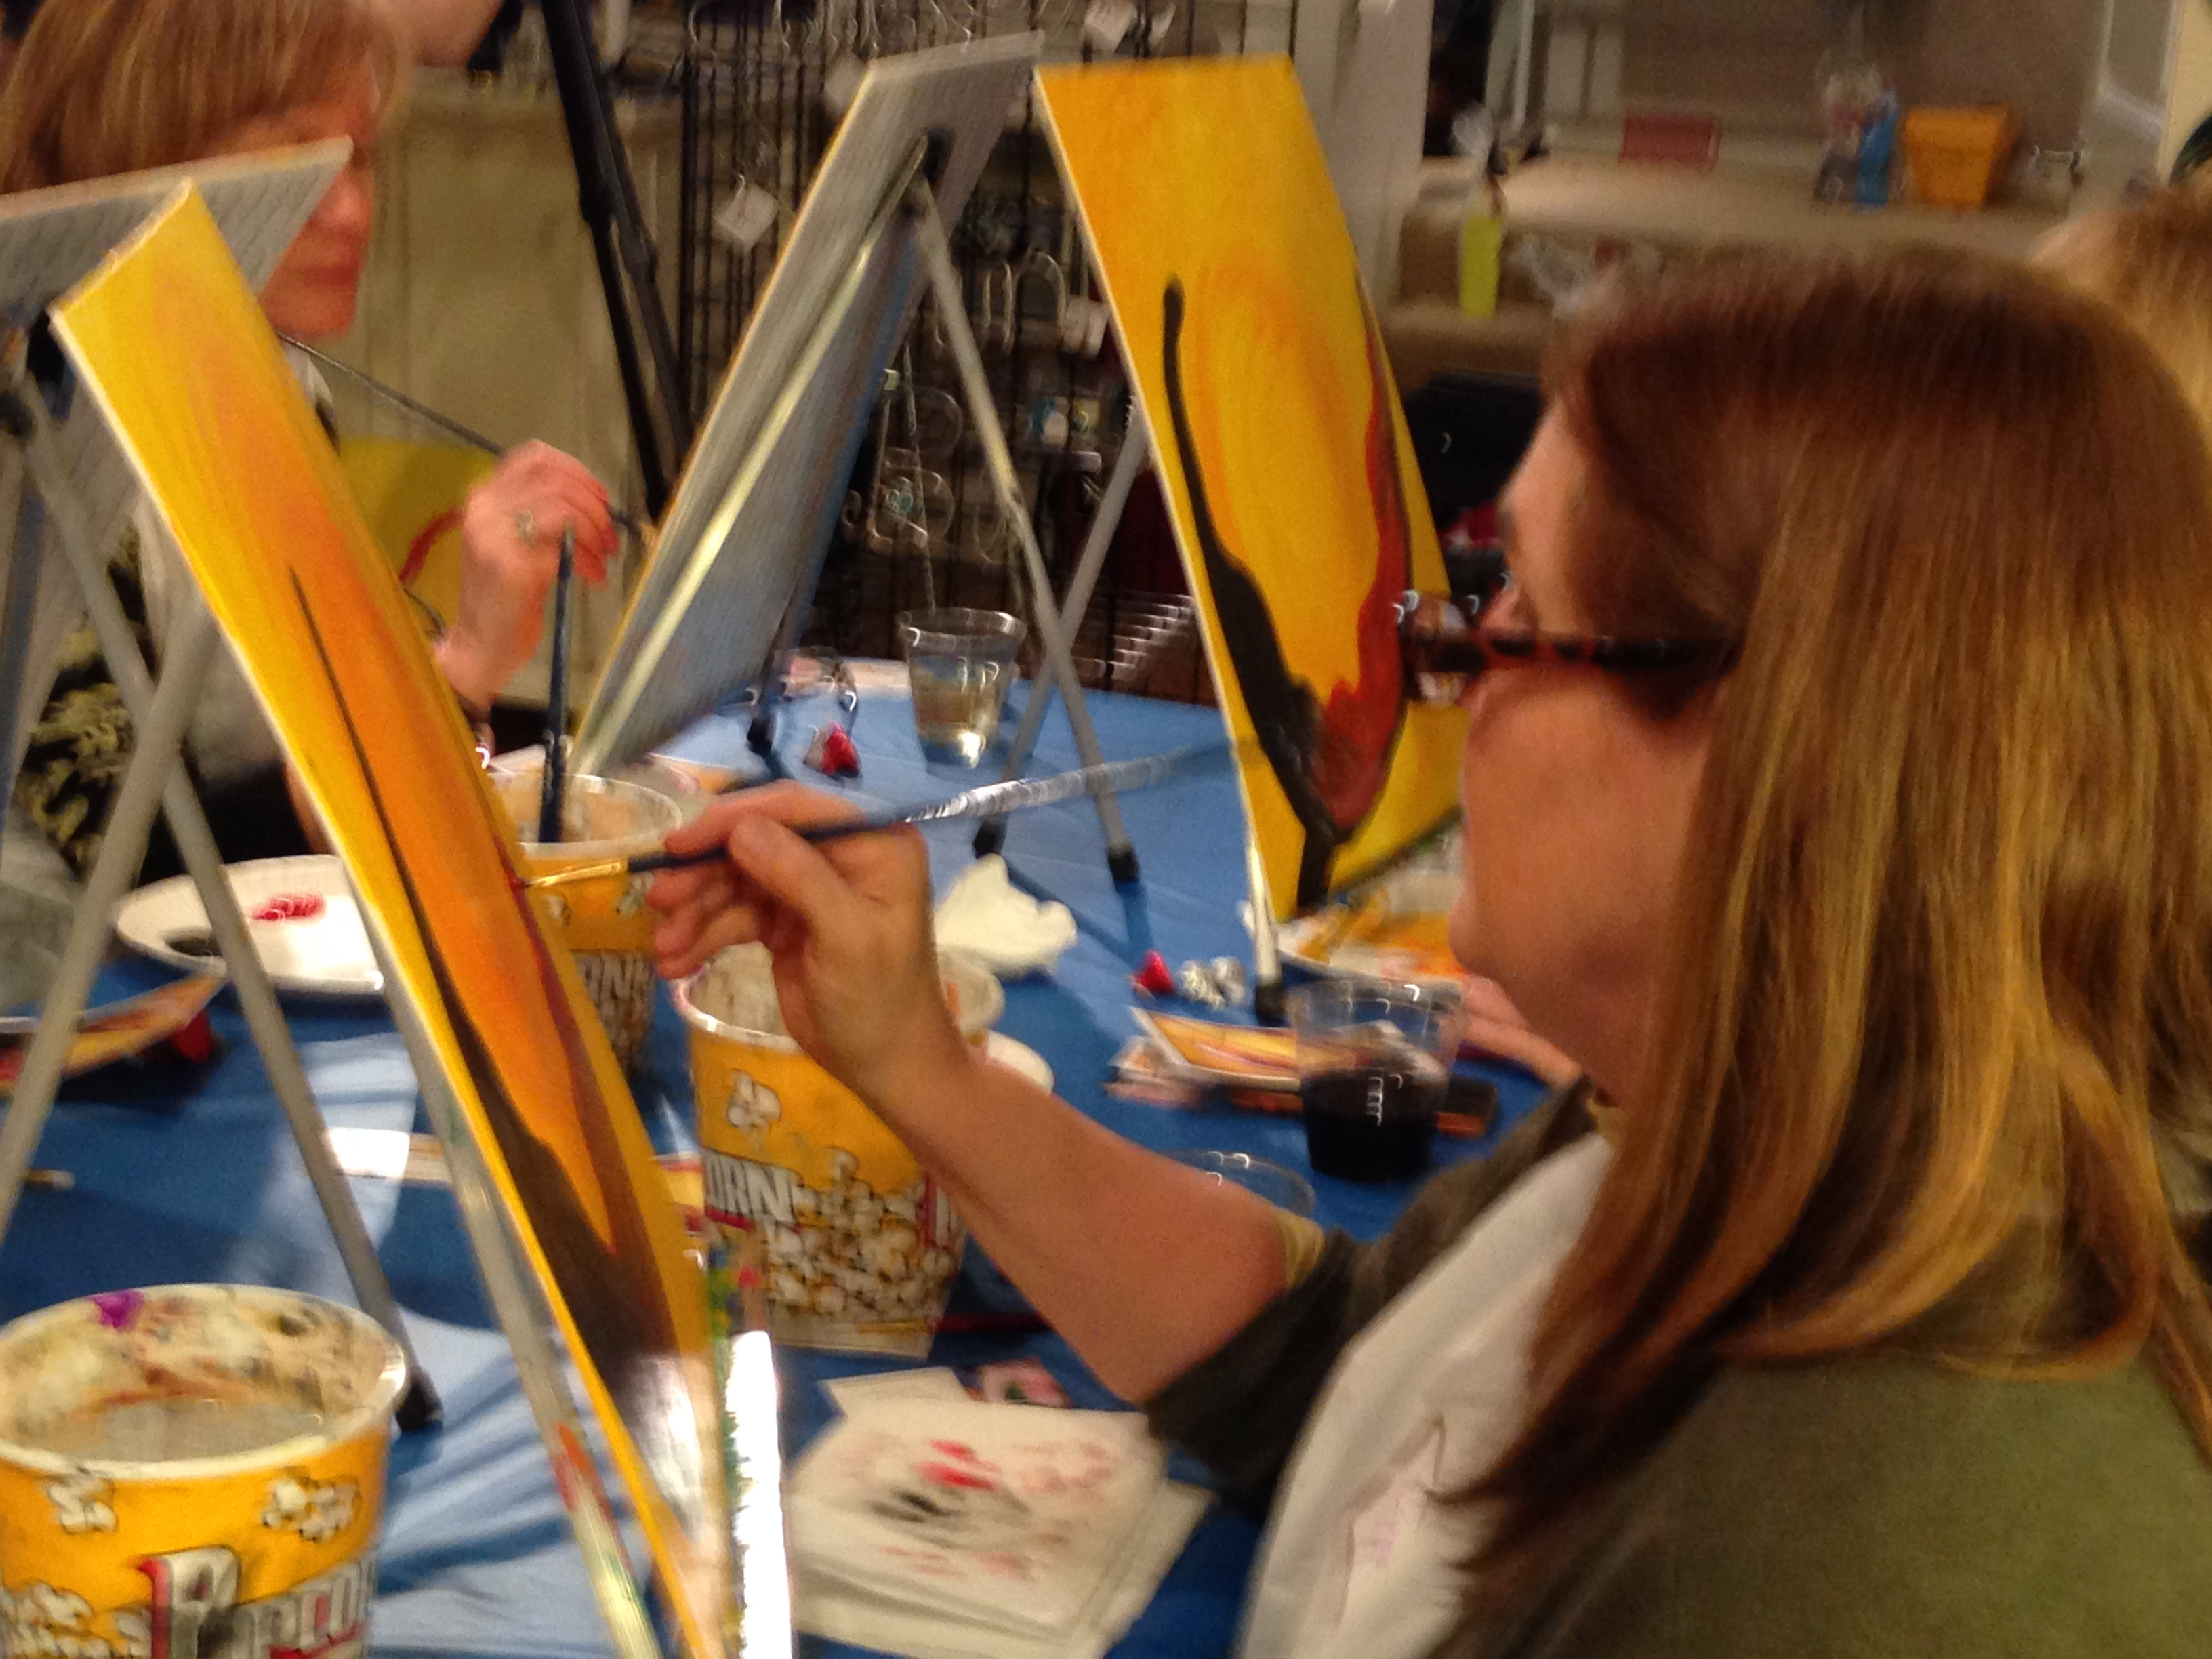 The H'Art of Chagrin wine and painting party 2/12/16